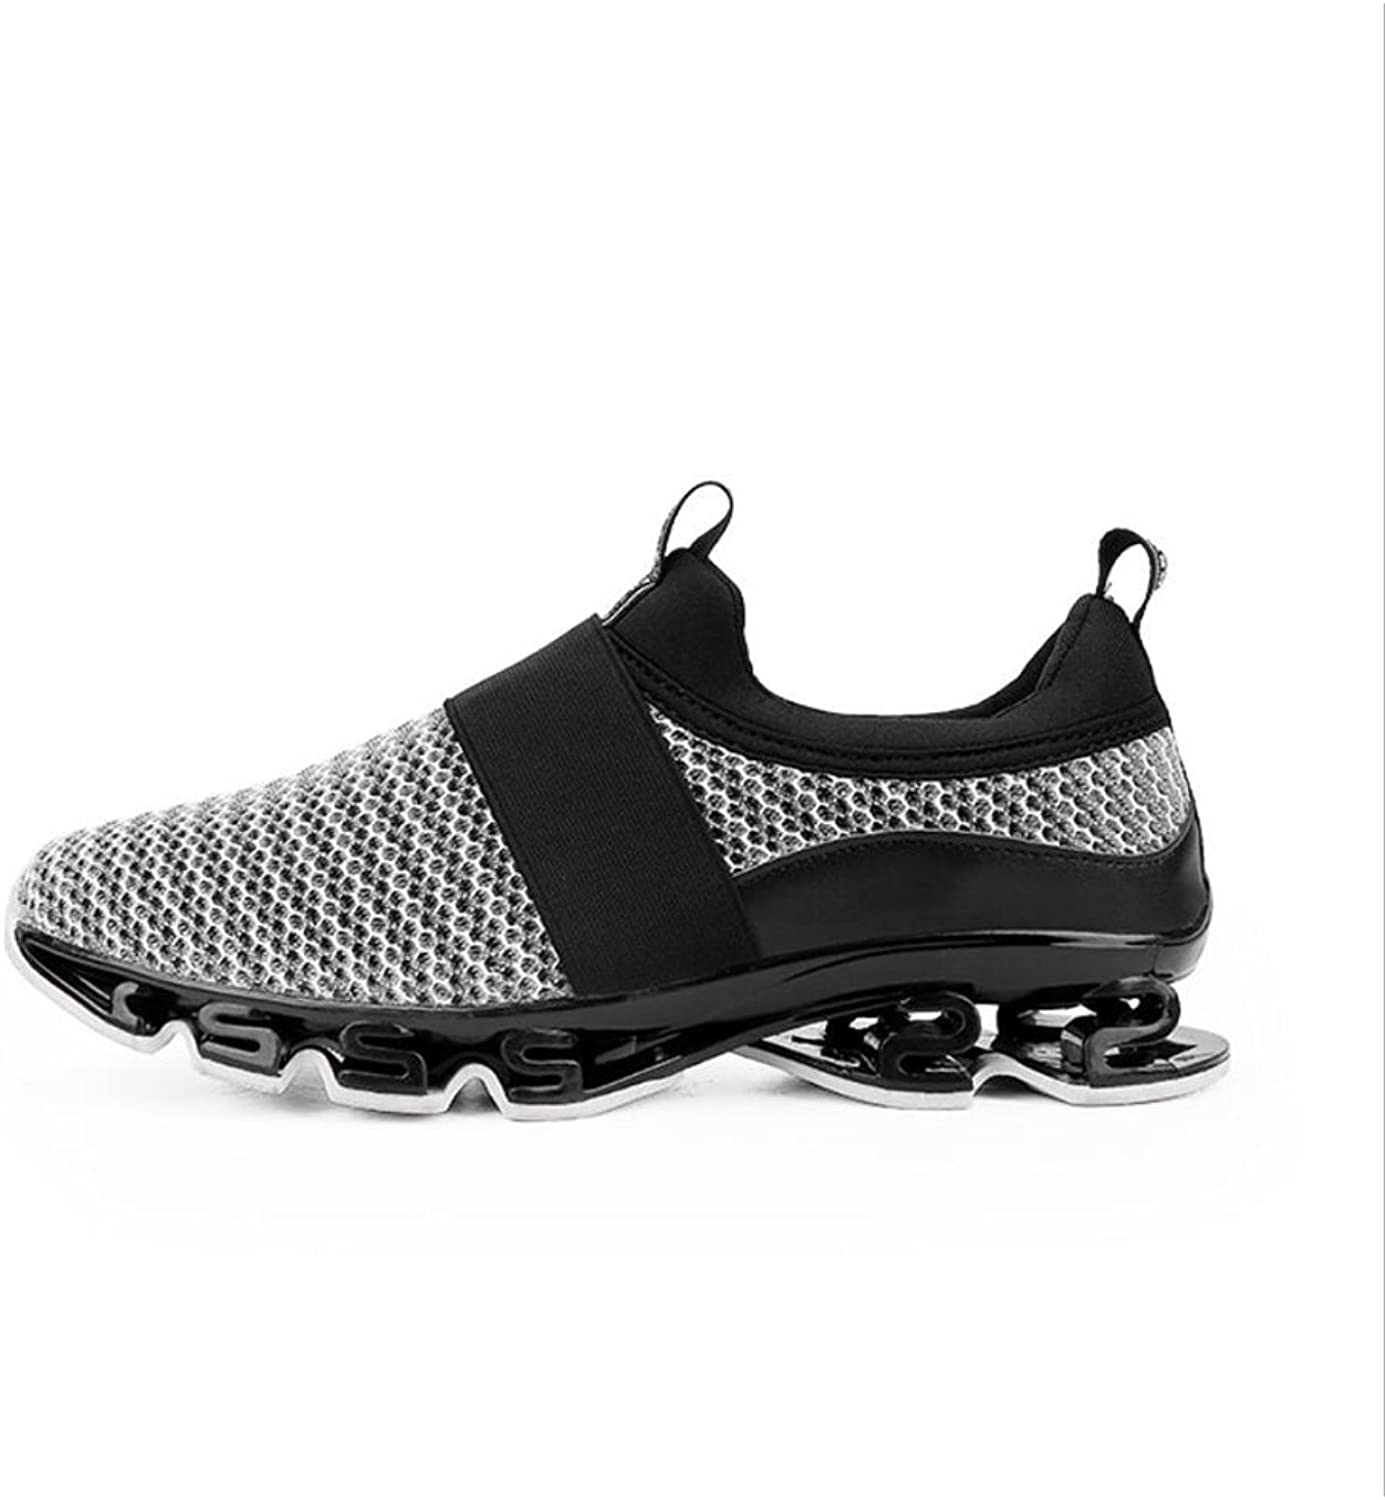 XUE Men's shoes Knit Athletic shoes ,Low-Top Sneakers, Comfort Walking shoes ,Lightweight Running shoes, Light Soles Tennis shoes ,Breathable EVA (color   B, Size   40)